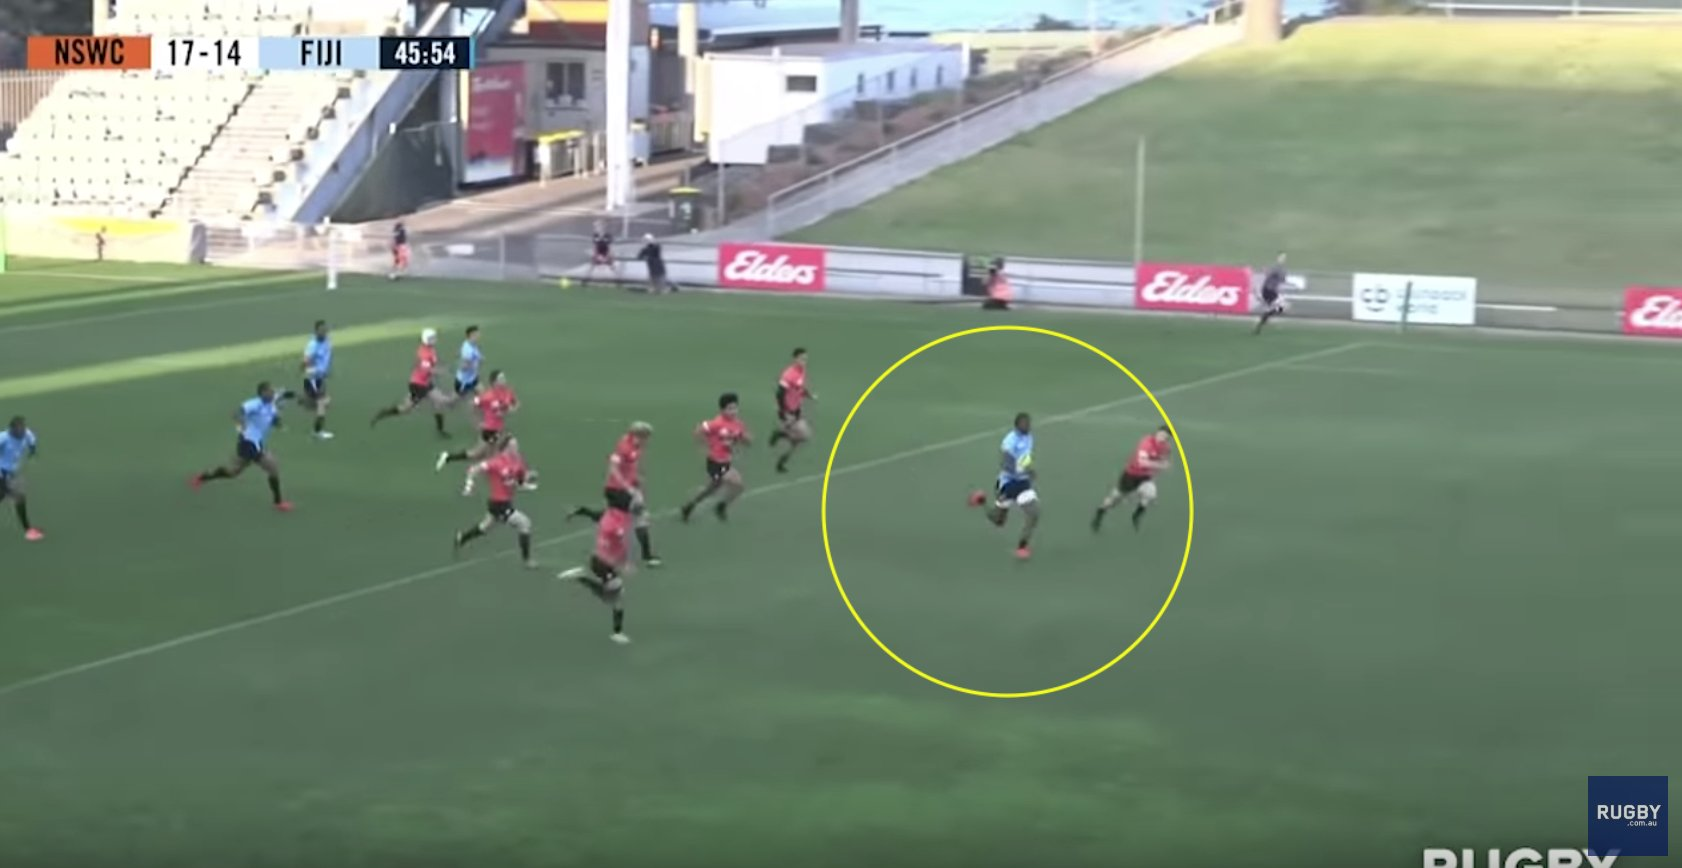 A Fijian team may very well have scored the try of the year